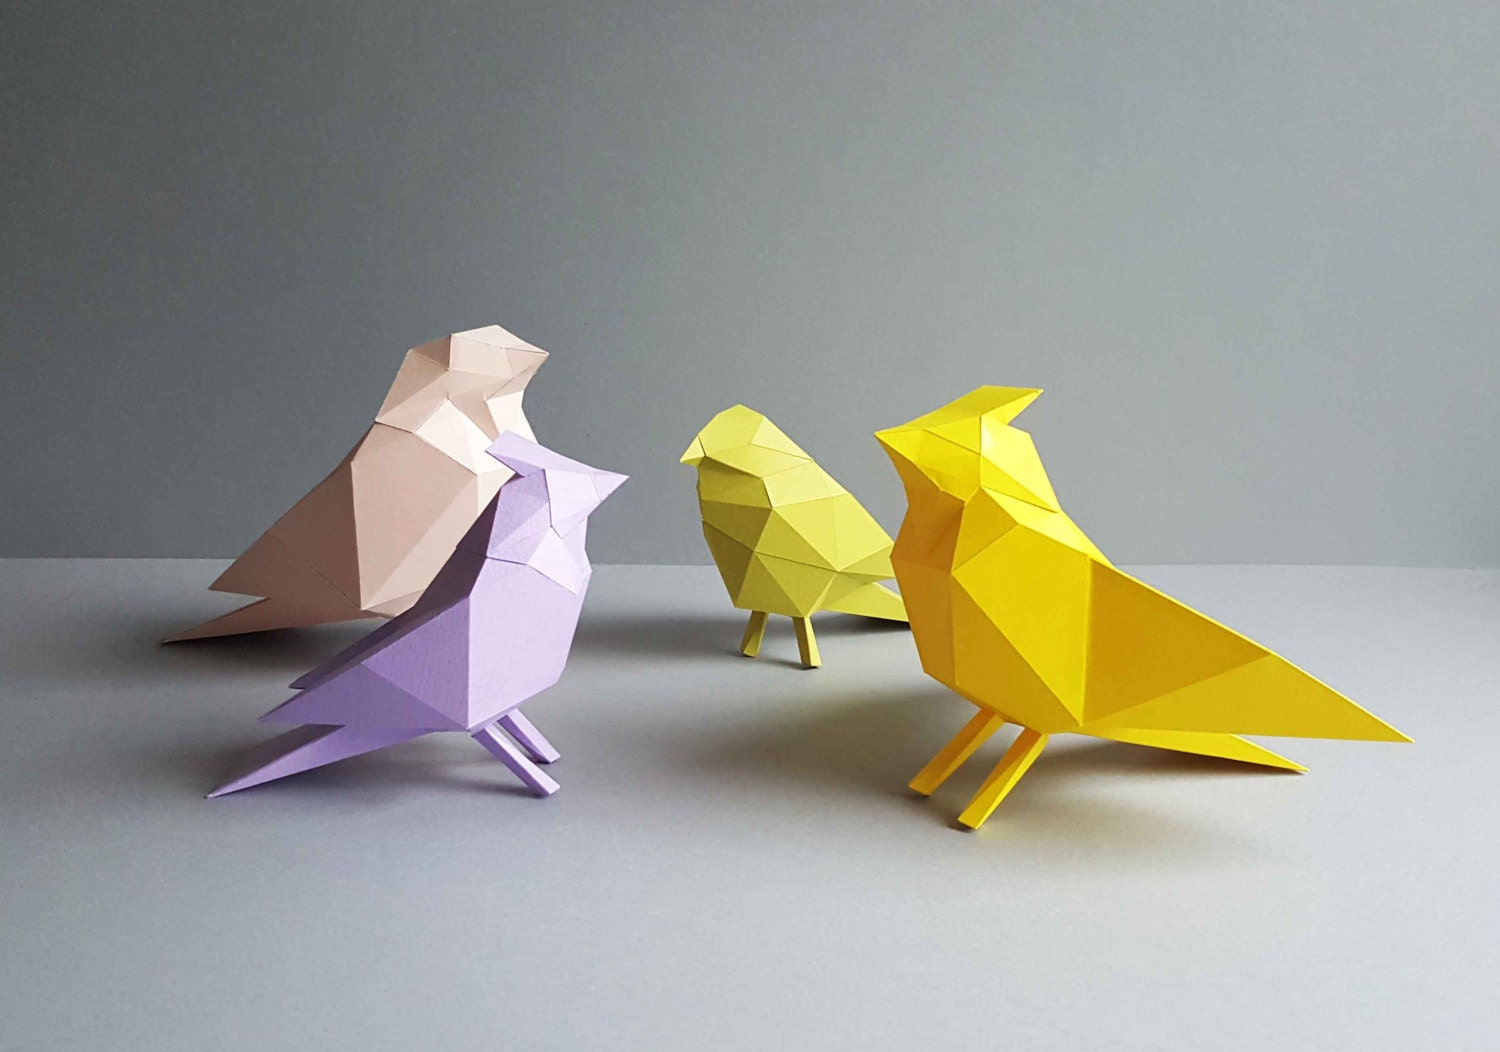 4 birds papercraft home decoration paper animals kit for Paper craft home